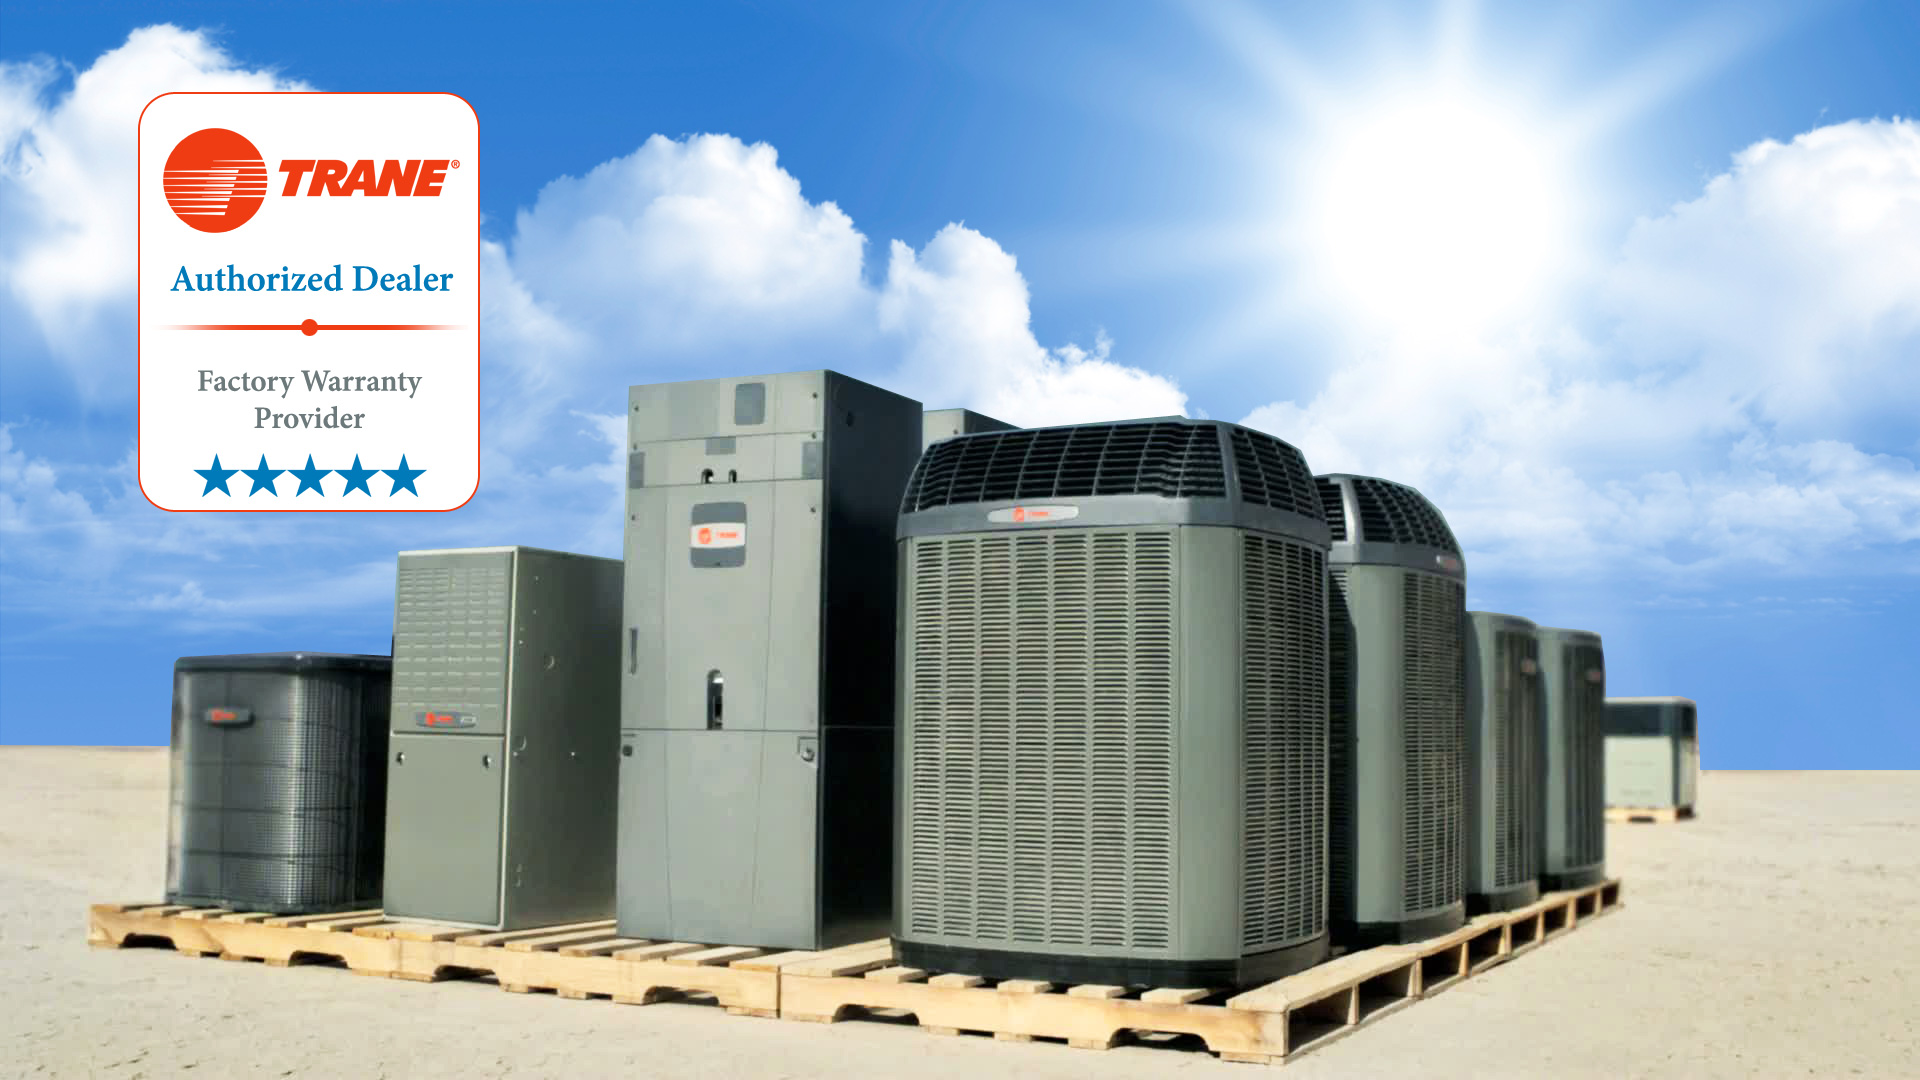 Buy Here Pay Here Orlando >> People Air Conditioning Orlando – Quality HVAC Services in Orlando and All of Central Florida